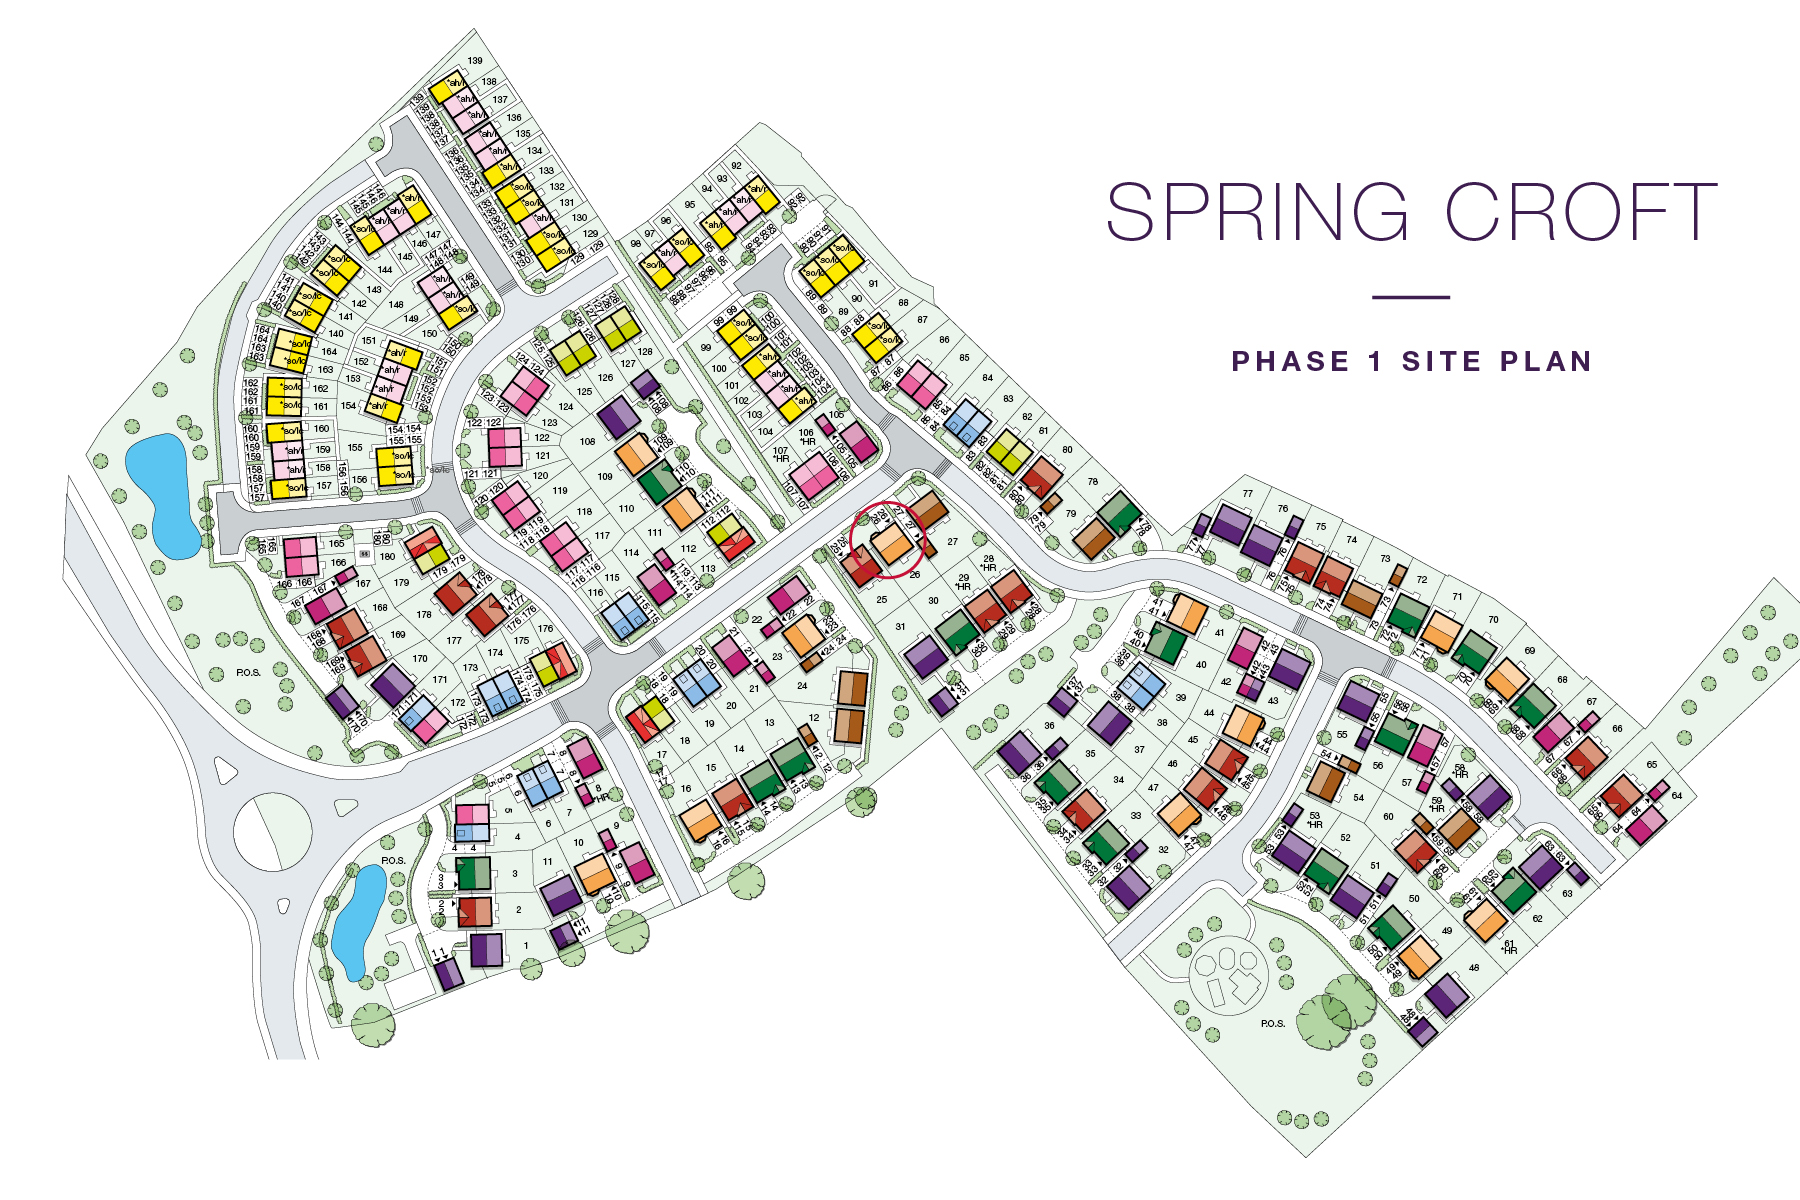 55201_TWNW - Spring Croft web graphic-plot26